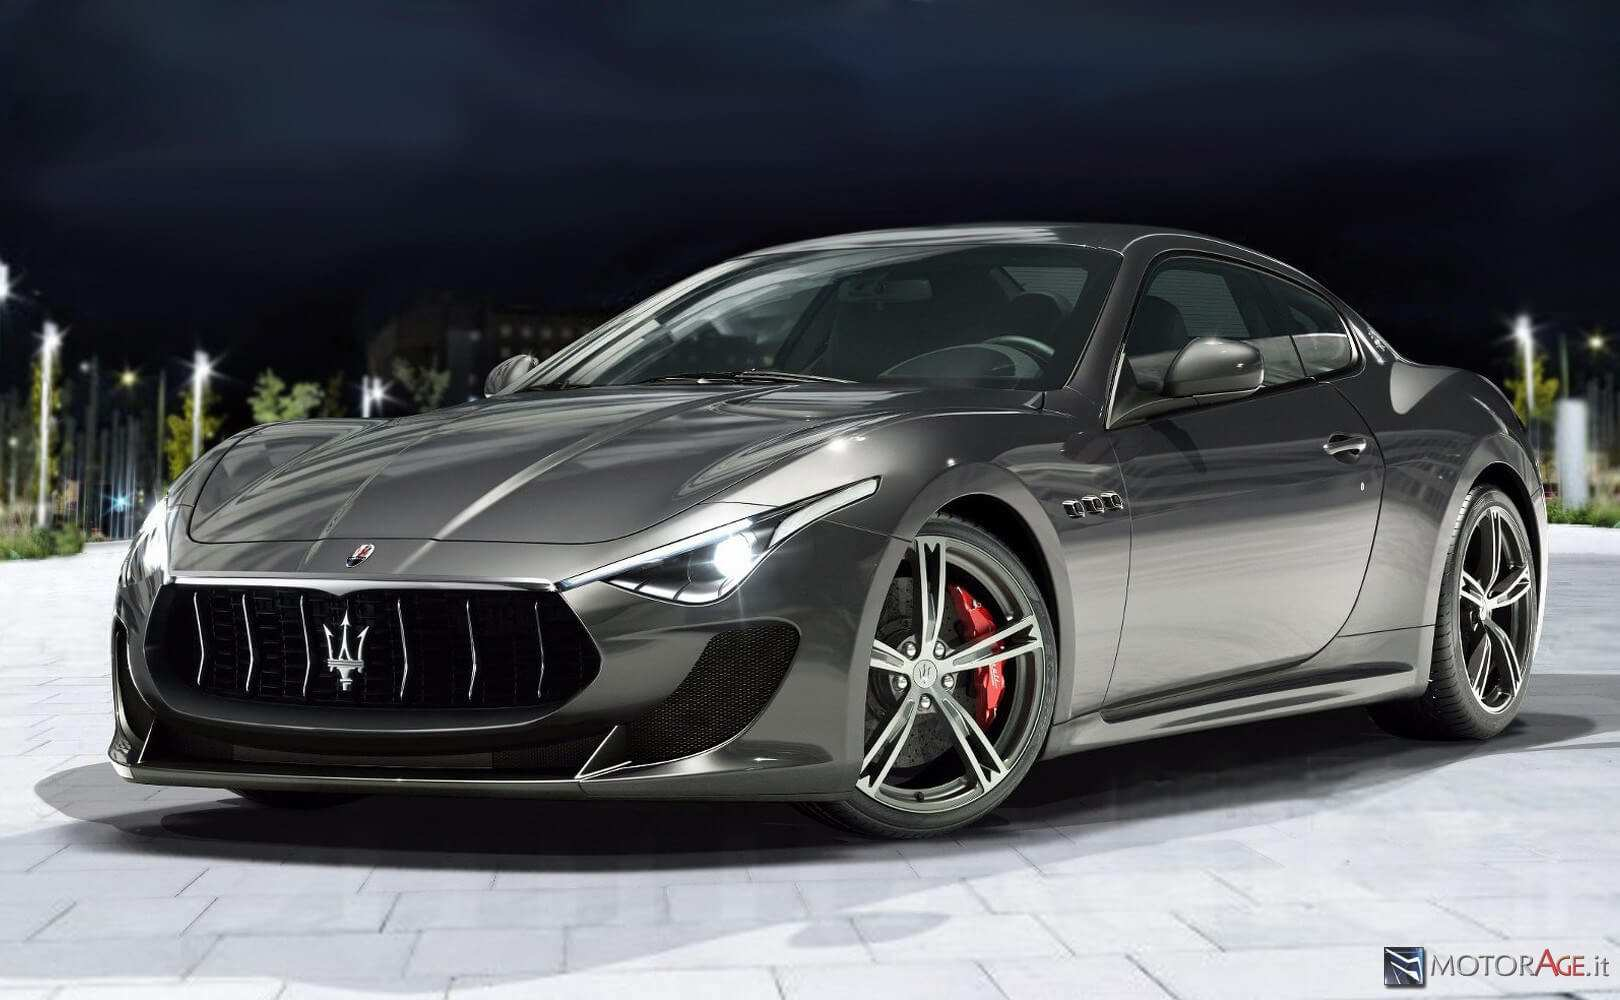 66 The Best 2019 Maserati Granturismo Review